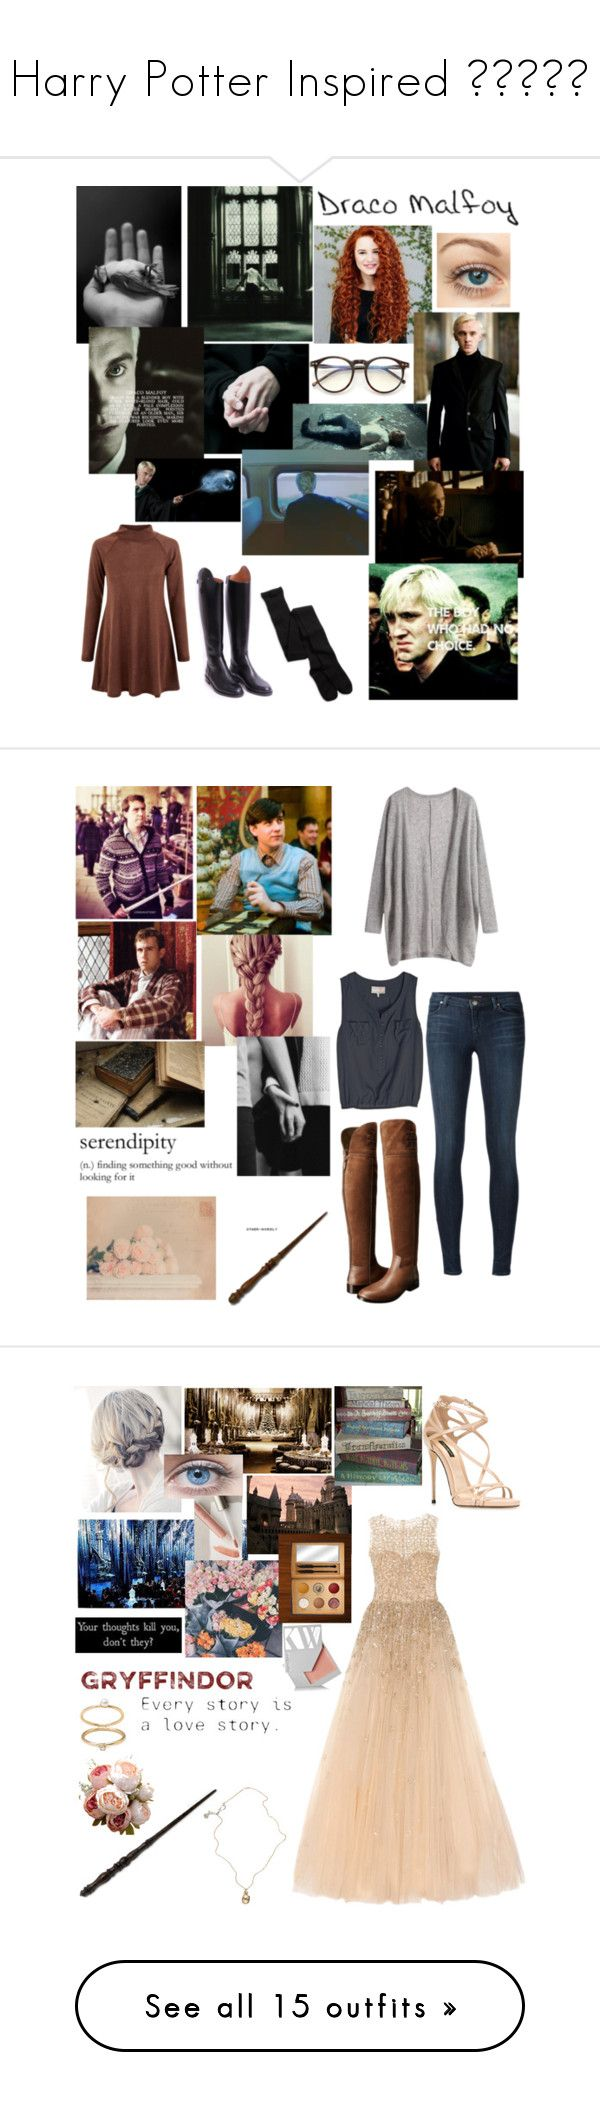 """""""Harry Potter Inspired 😉✍🏻📚📕"""" by alisa-avery ❤ liked on Polyvore featuring Converse, New Look, American Eagle Outfitters, Wildfox, Gucci, Neville, J Brand, Tory Burch, WALL and Dolce&Gabbana"""